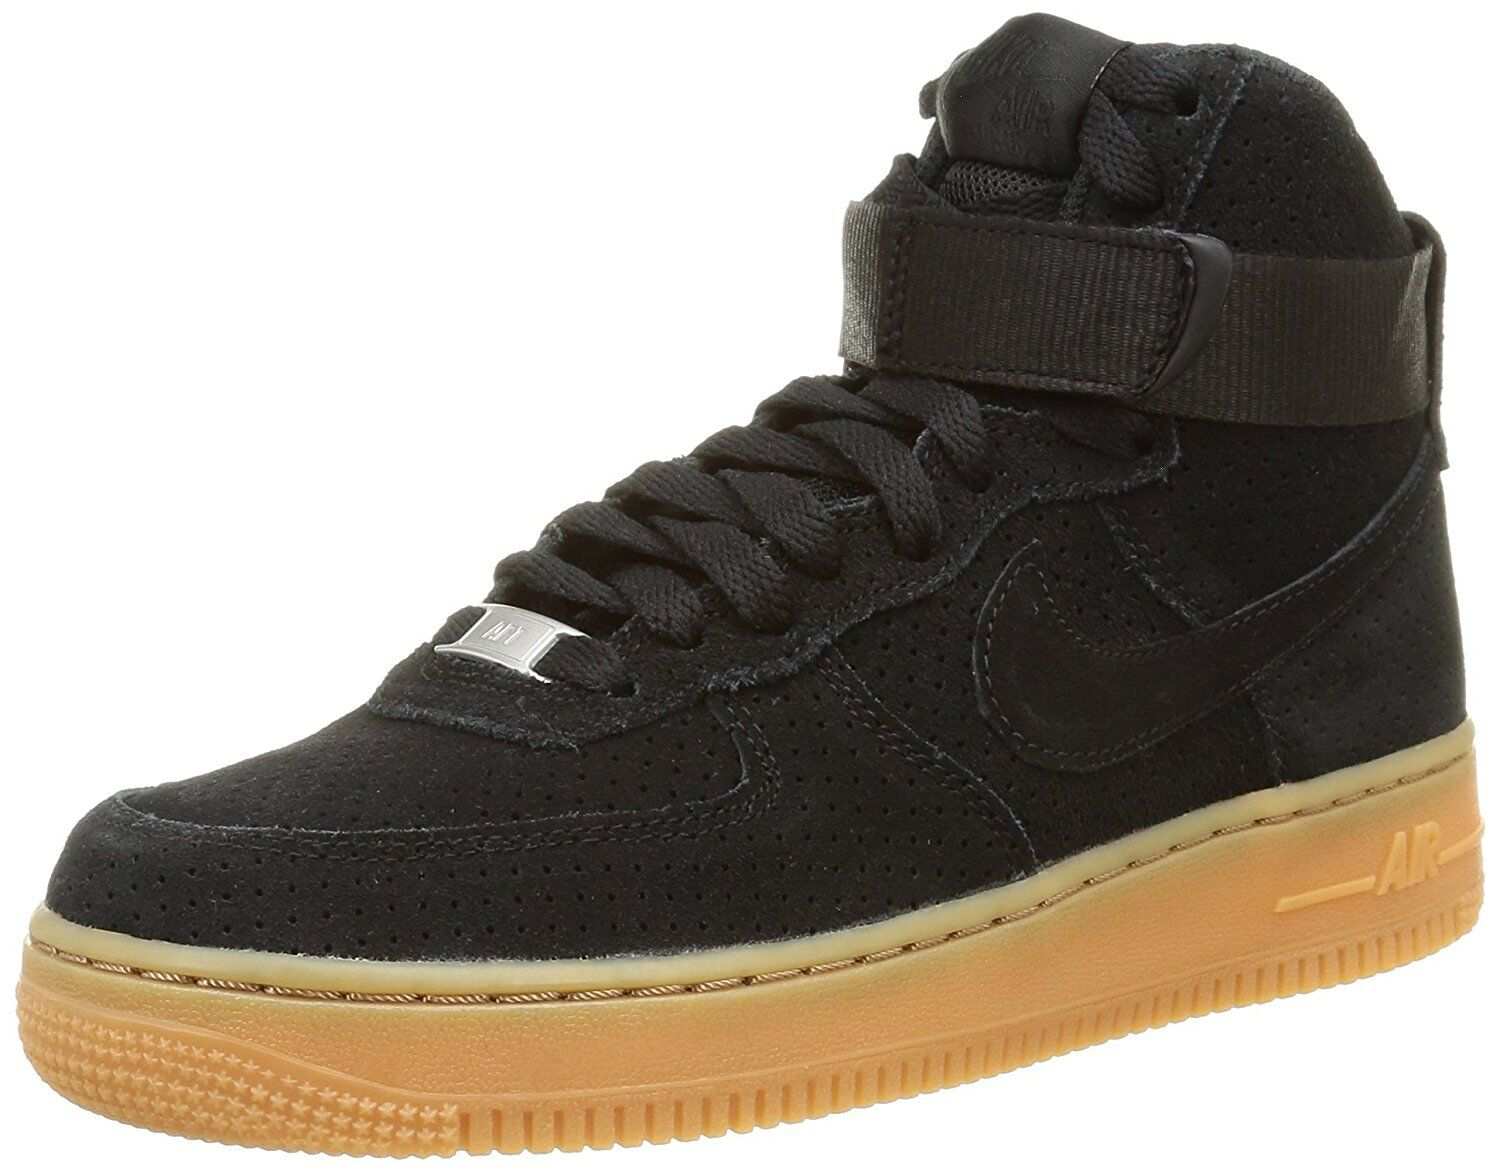 Nike WMNS Air Force 1 Mid '07 Basketball shoes, Size 7 (749266-001) BLACK BLACK